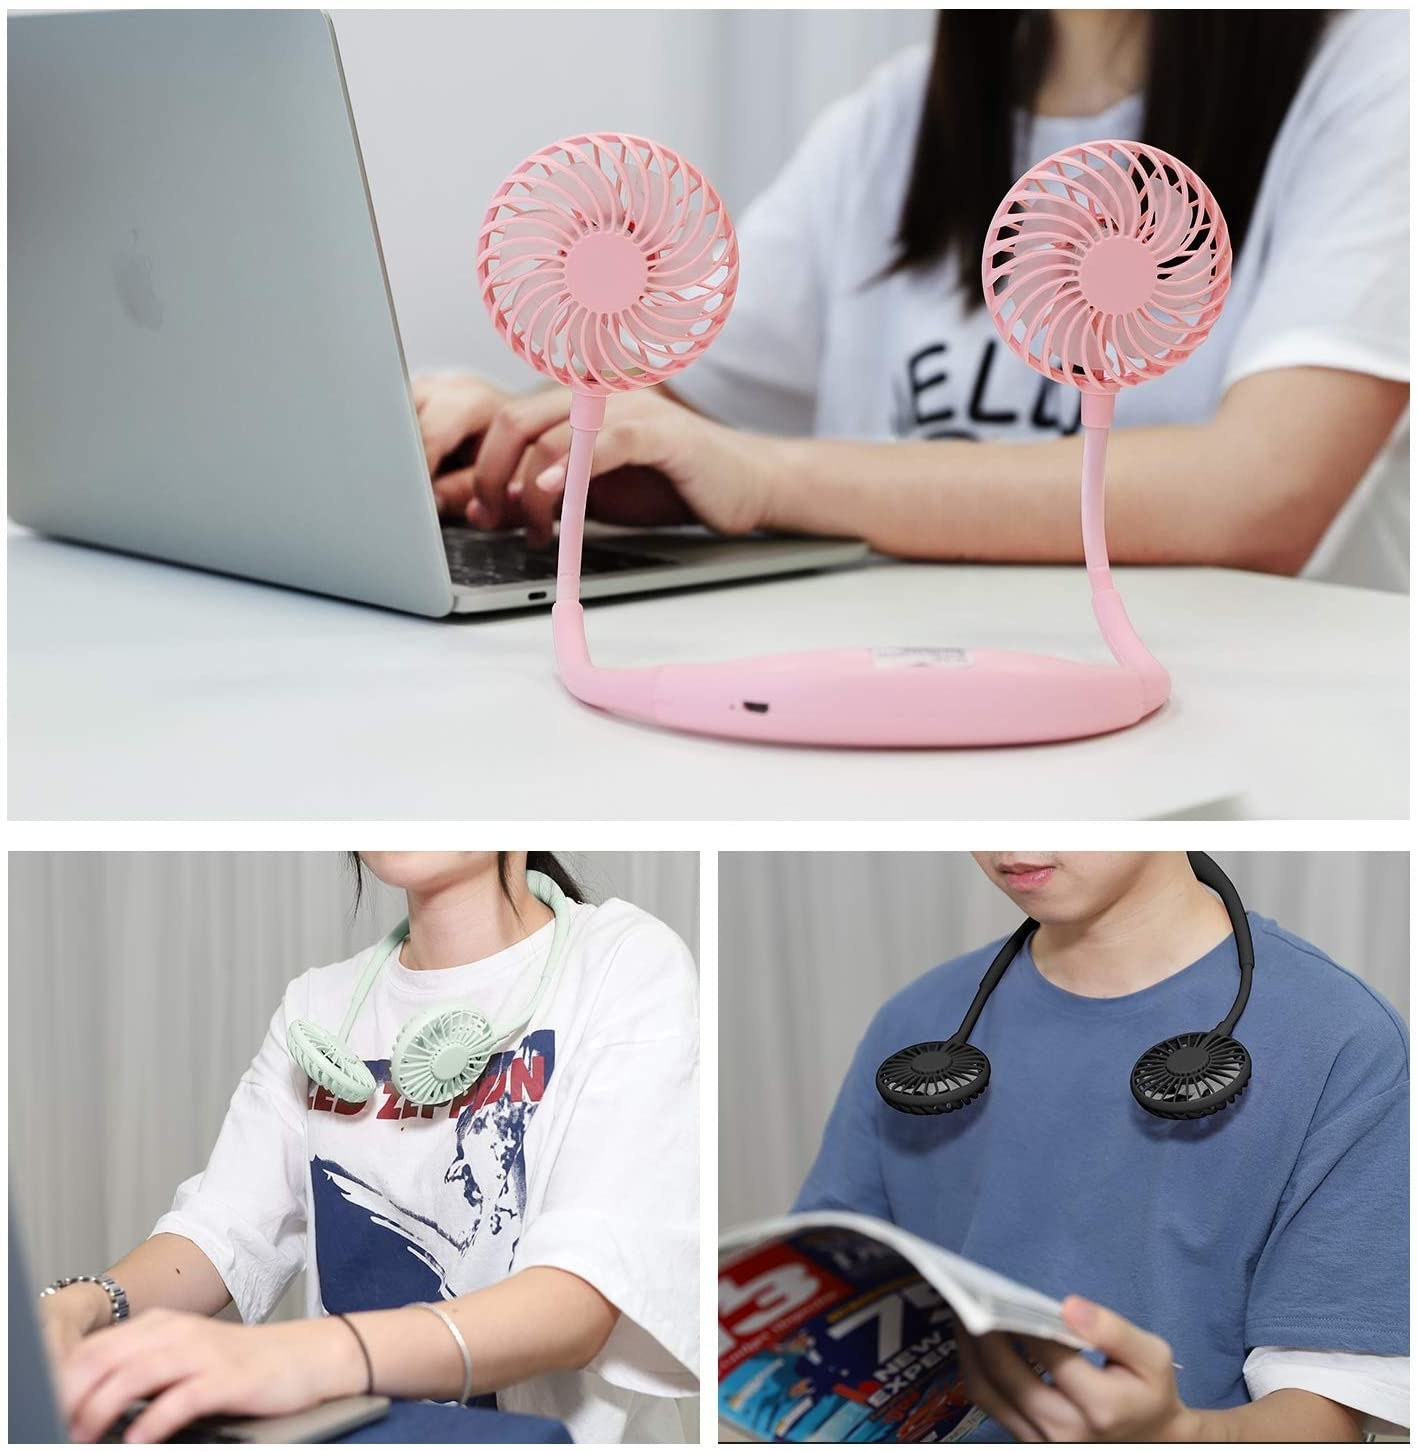 A fan with two heads is upright on a desk and two people wear it around their neck